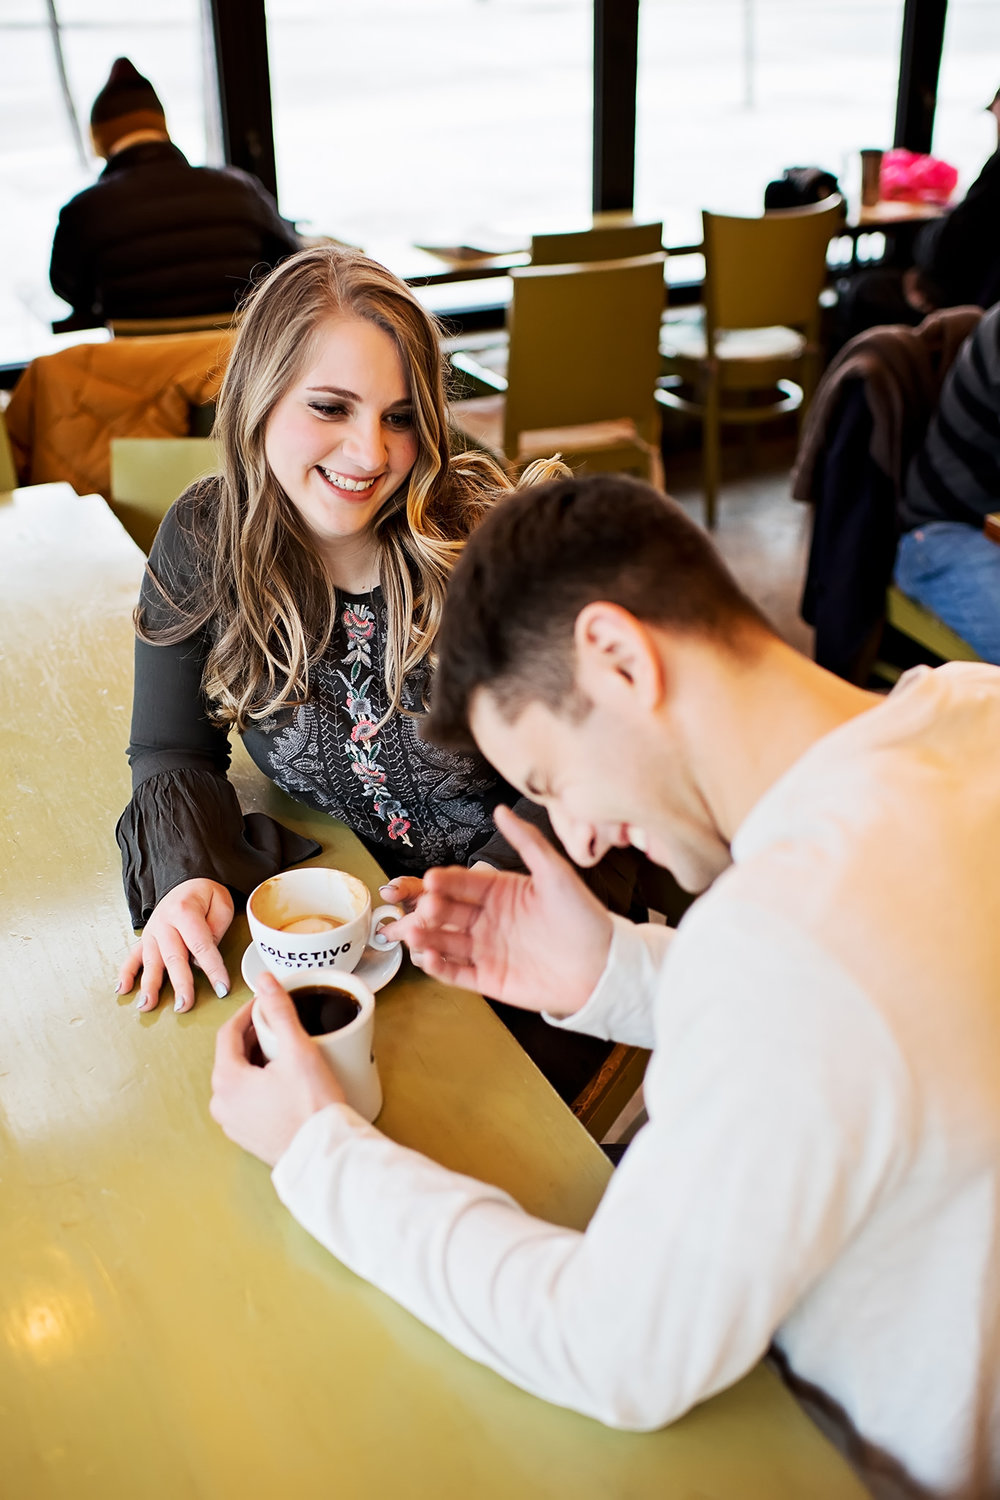 Man laughing with fiancé at a coffee shop